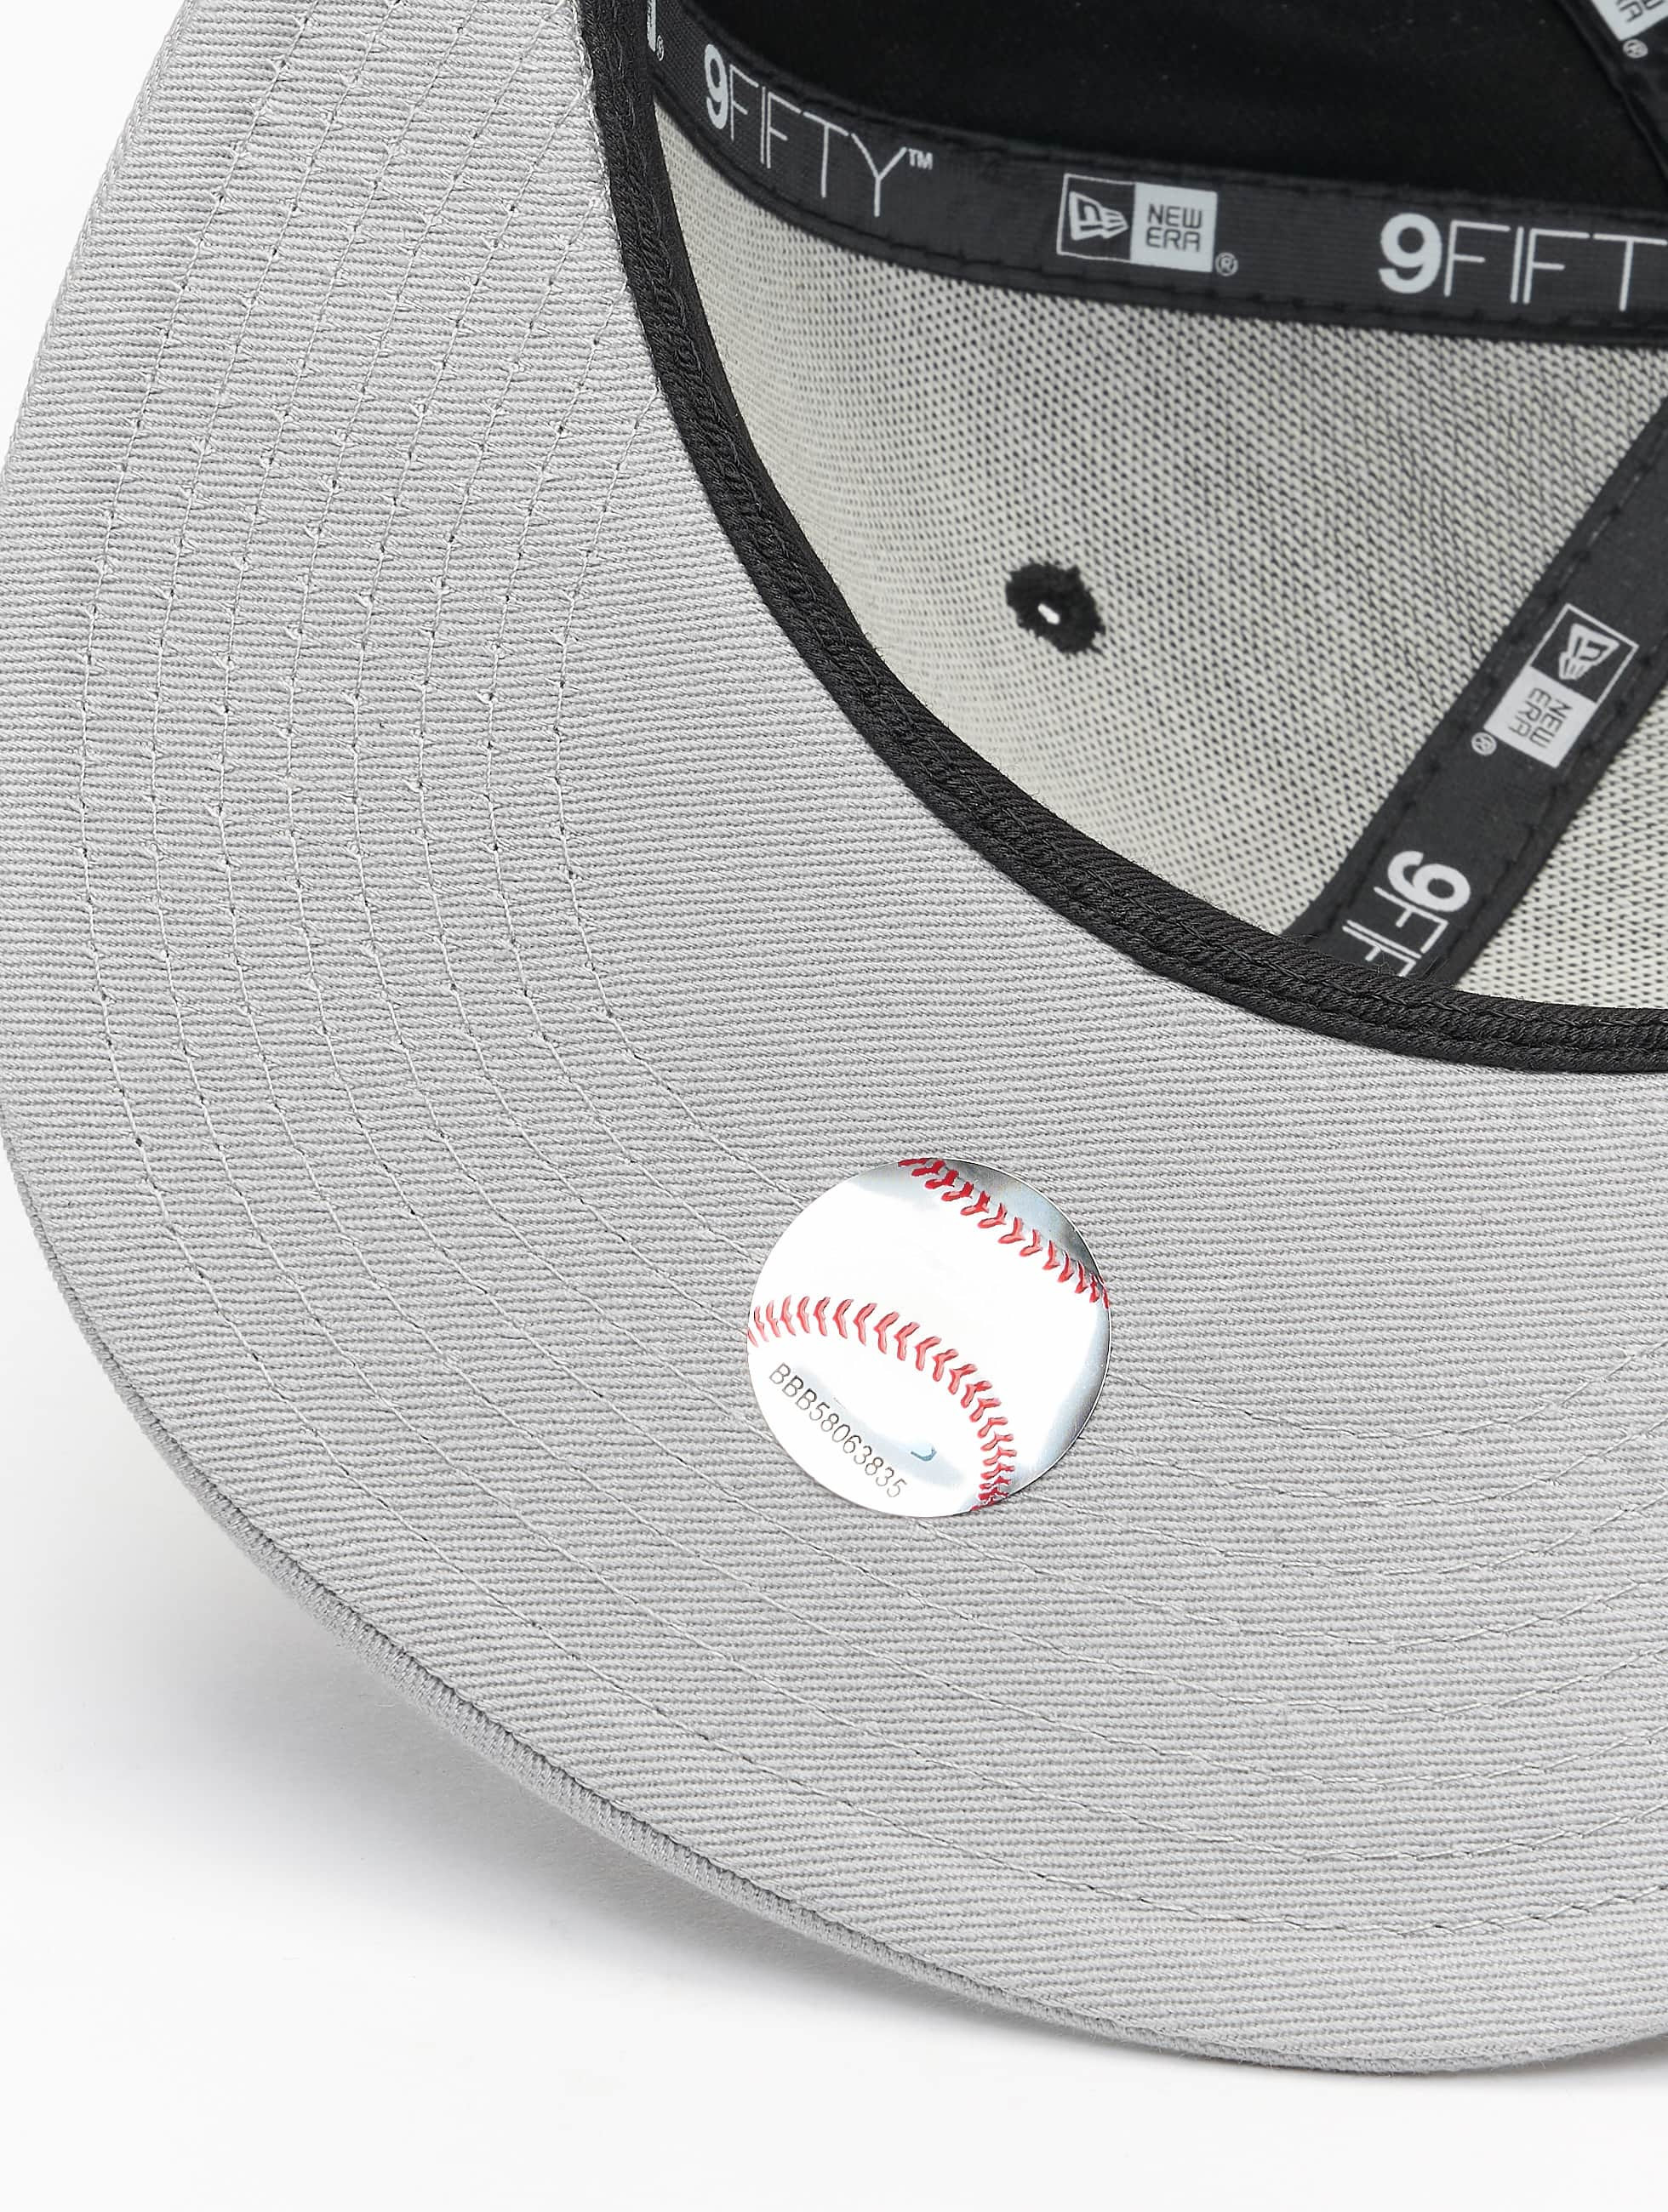 New Era Кепка с застёжкой MLB Cotton Block NY Yankees черный